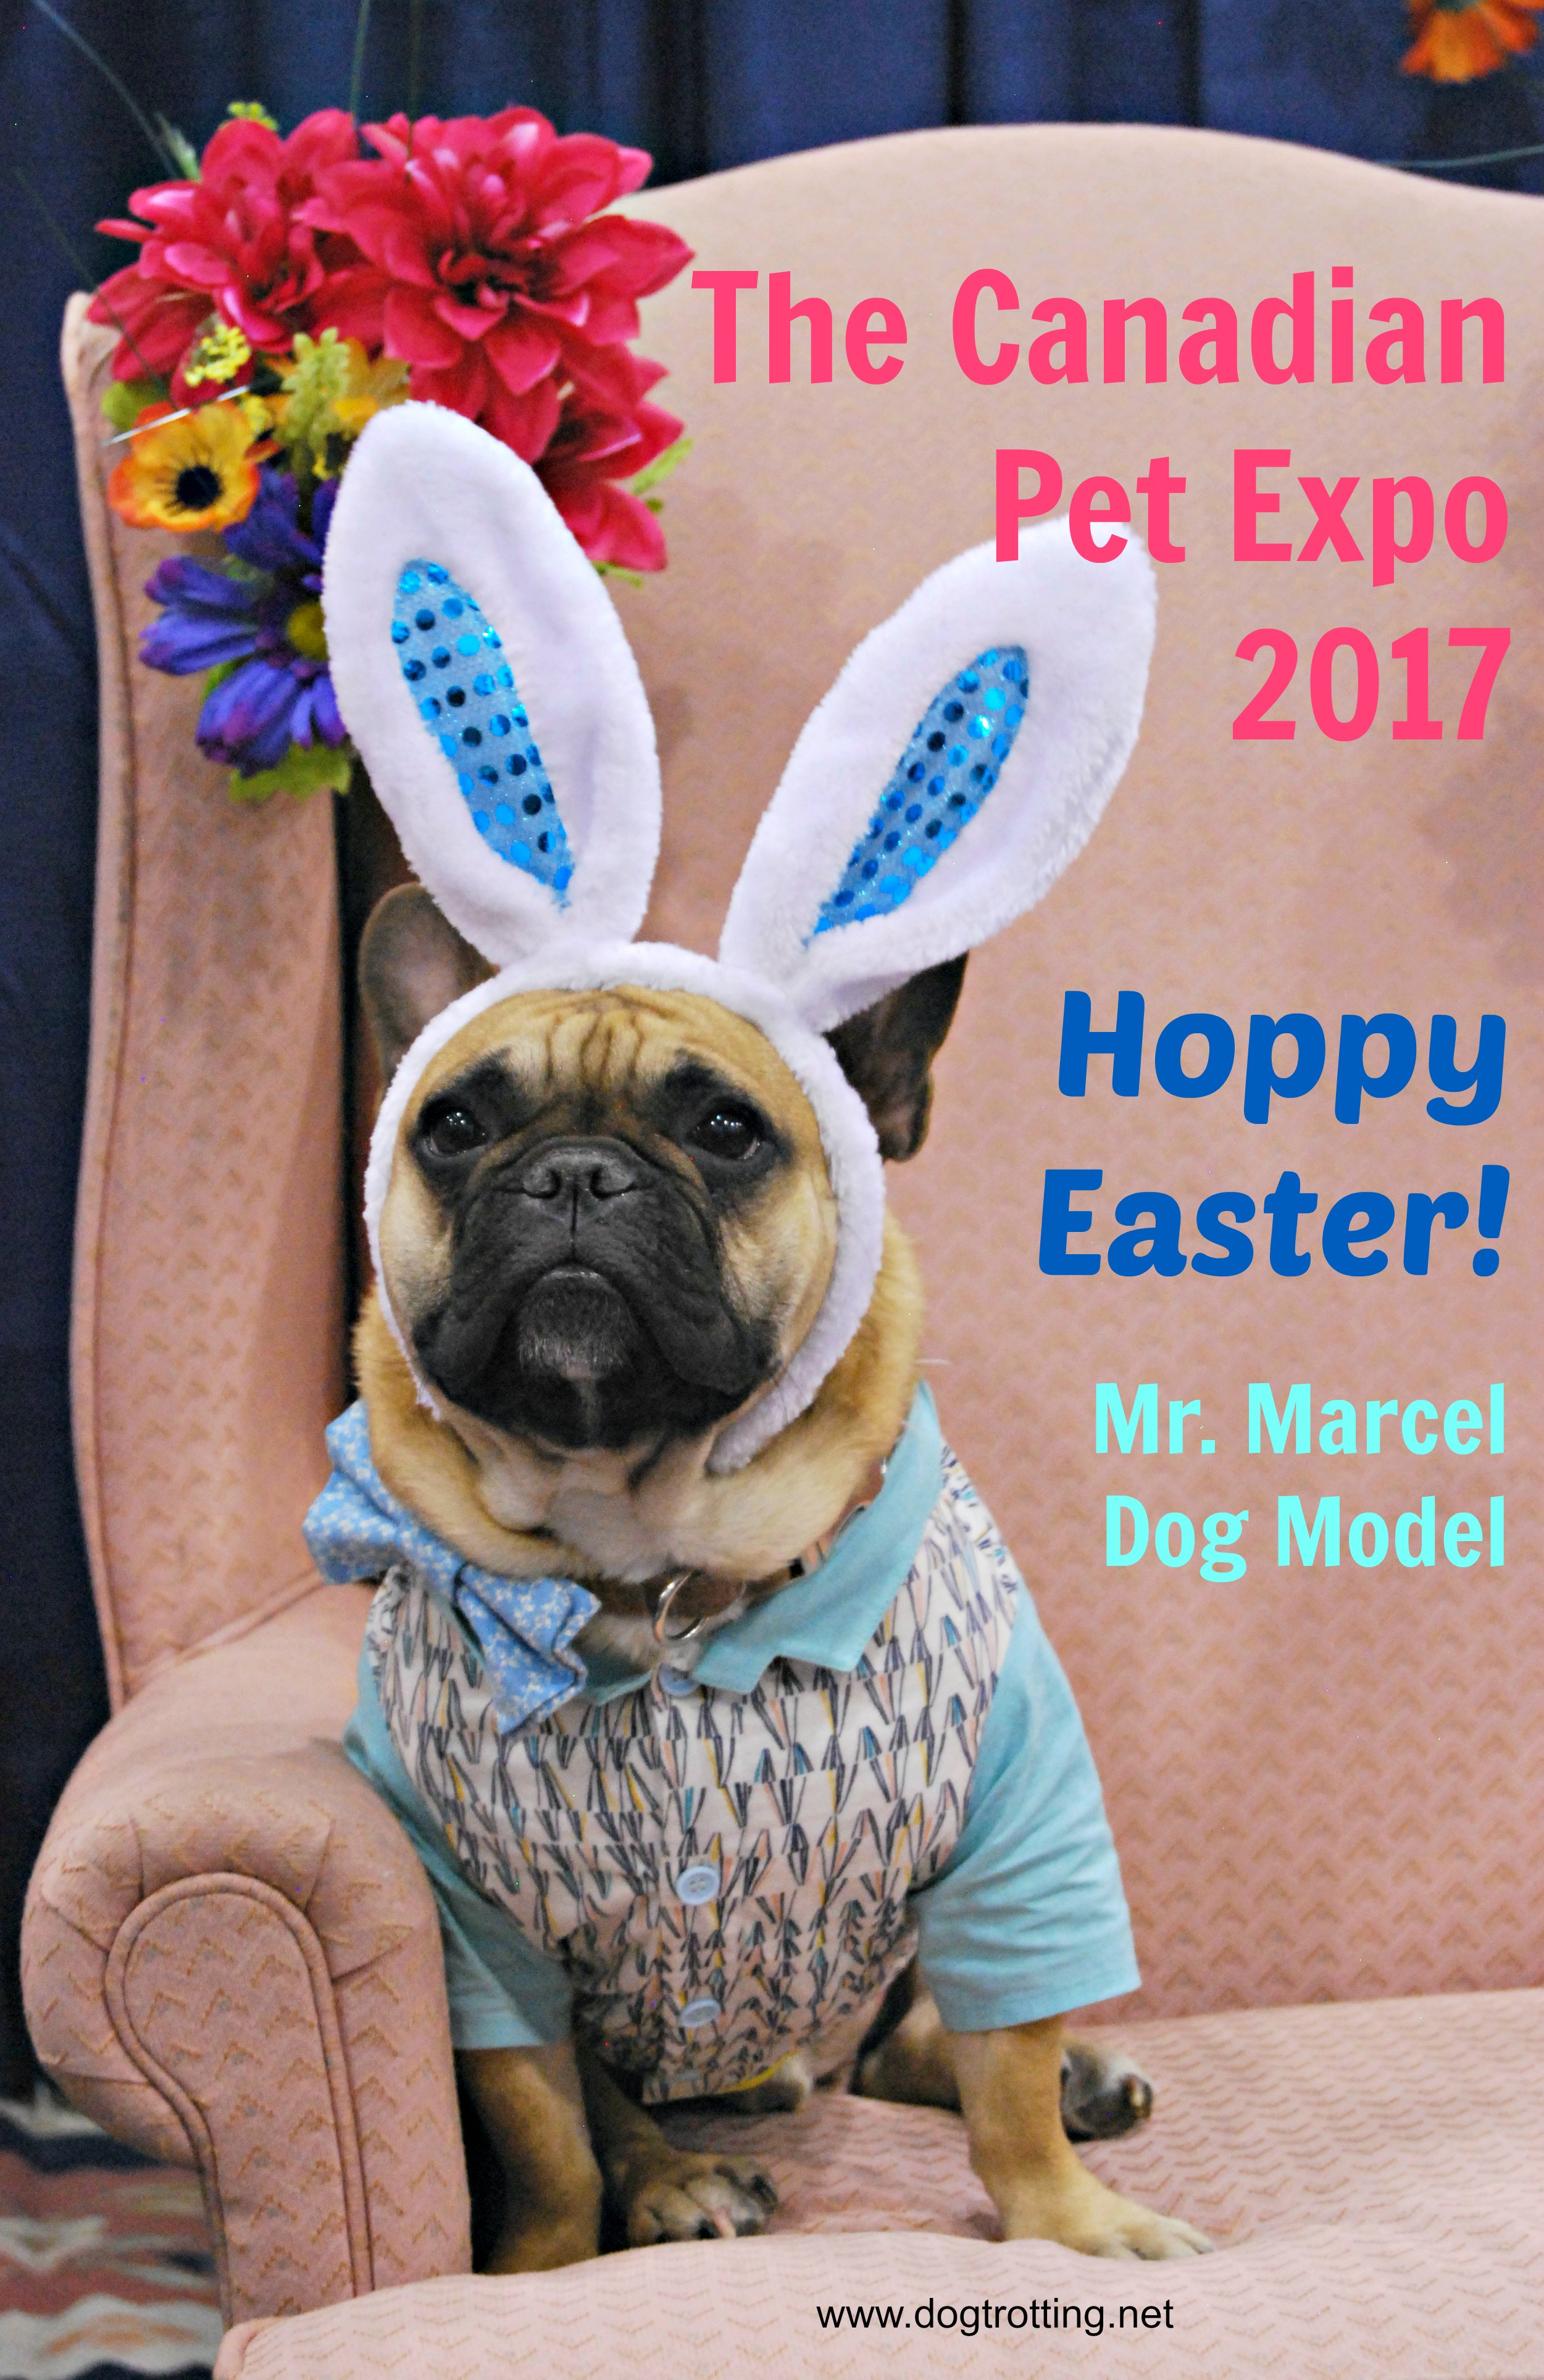 Toronto: More Litter More Love at the Spring Canadian Pet Expo 2017